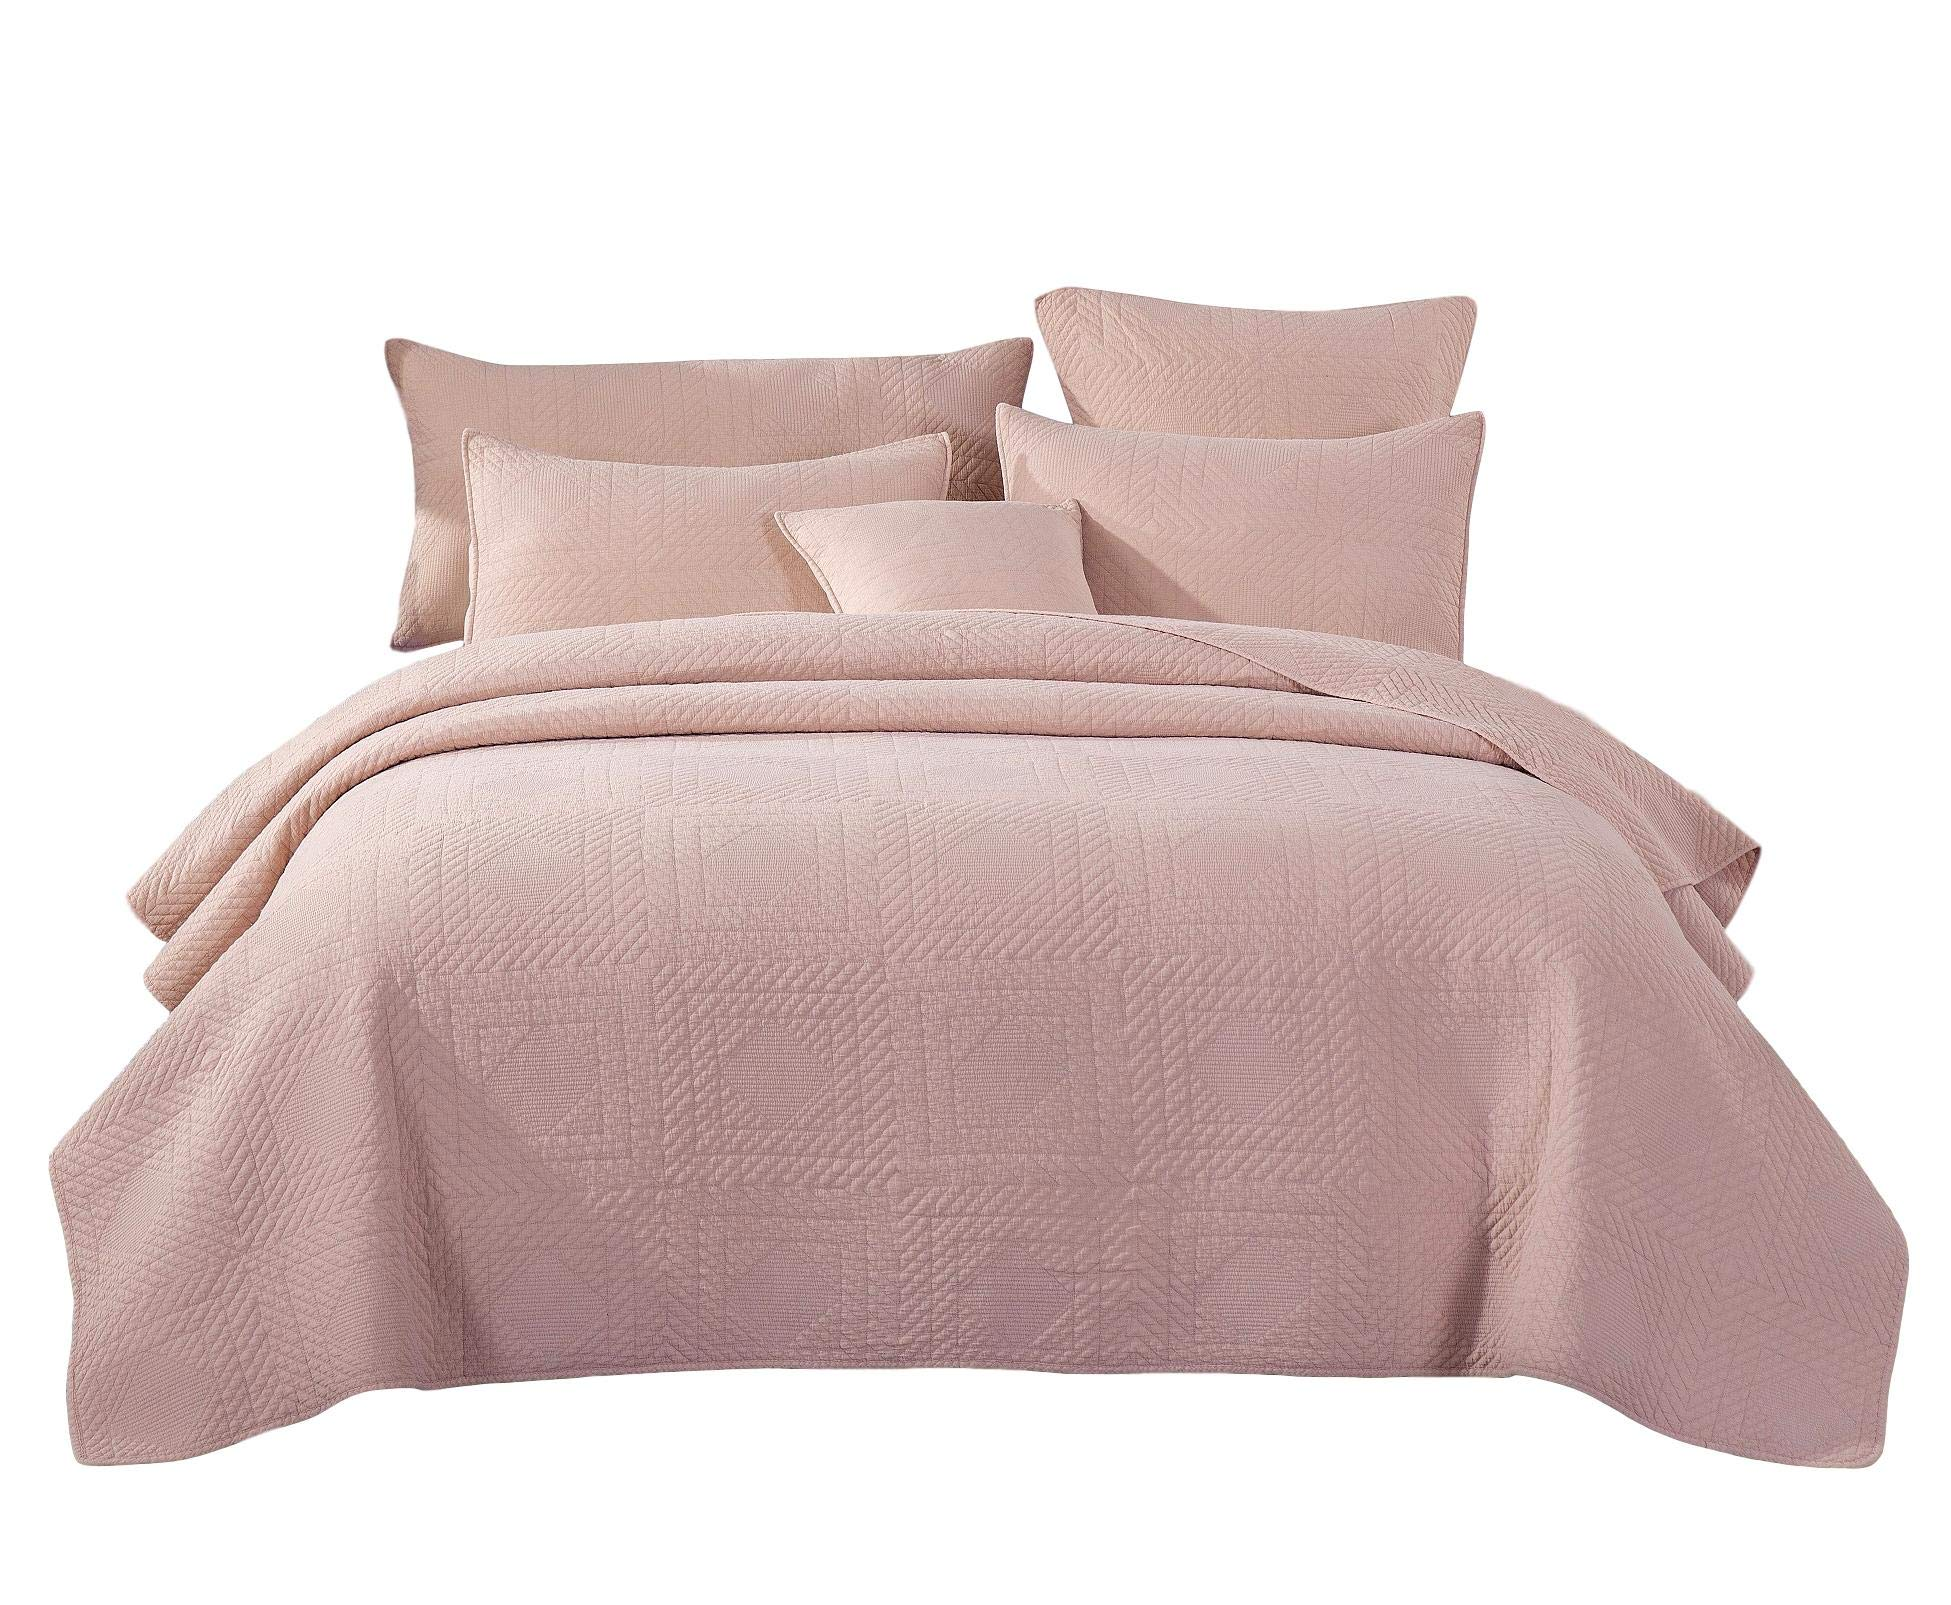 Tache Elegant Solid Rustic Dusty Blush Pink Soothing Pastel Soft Cotton Stone Wash Quilted Bedspread Quilt 3 Piece Set, California King